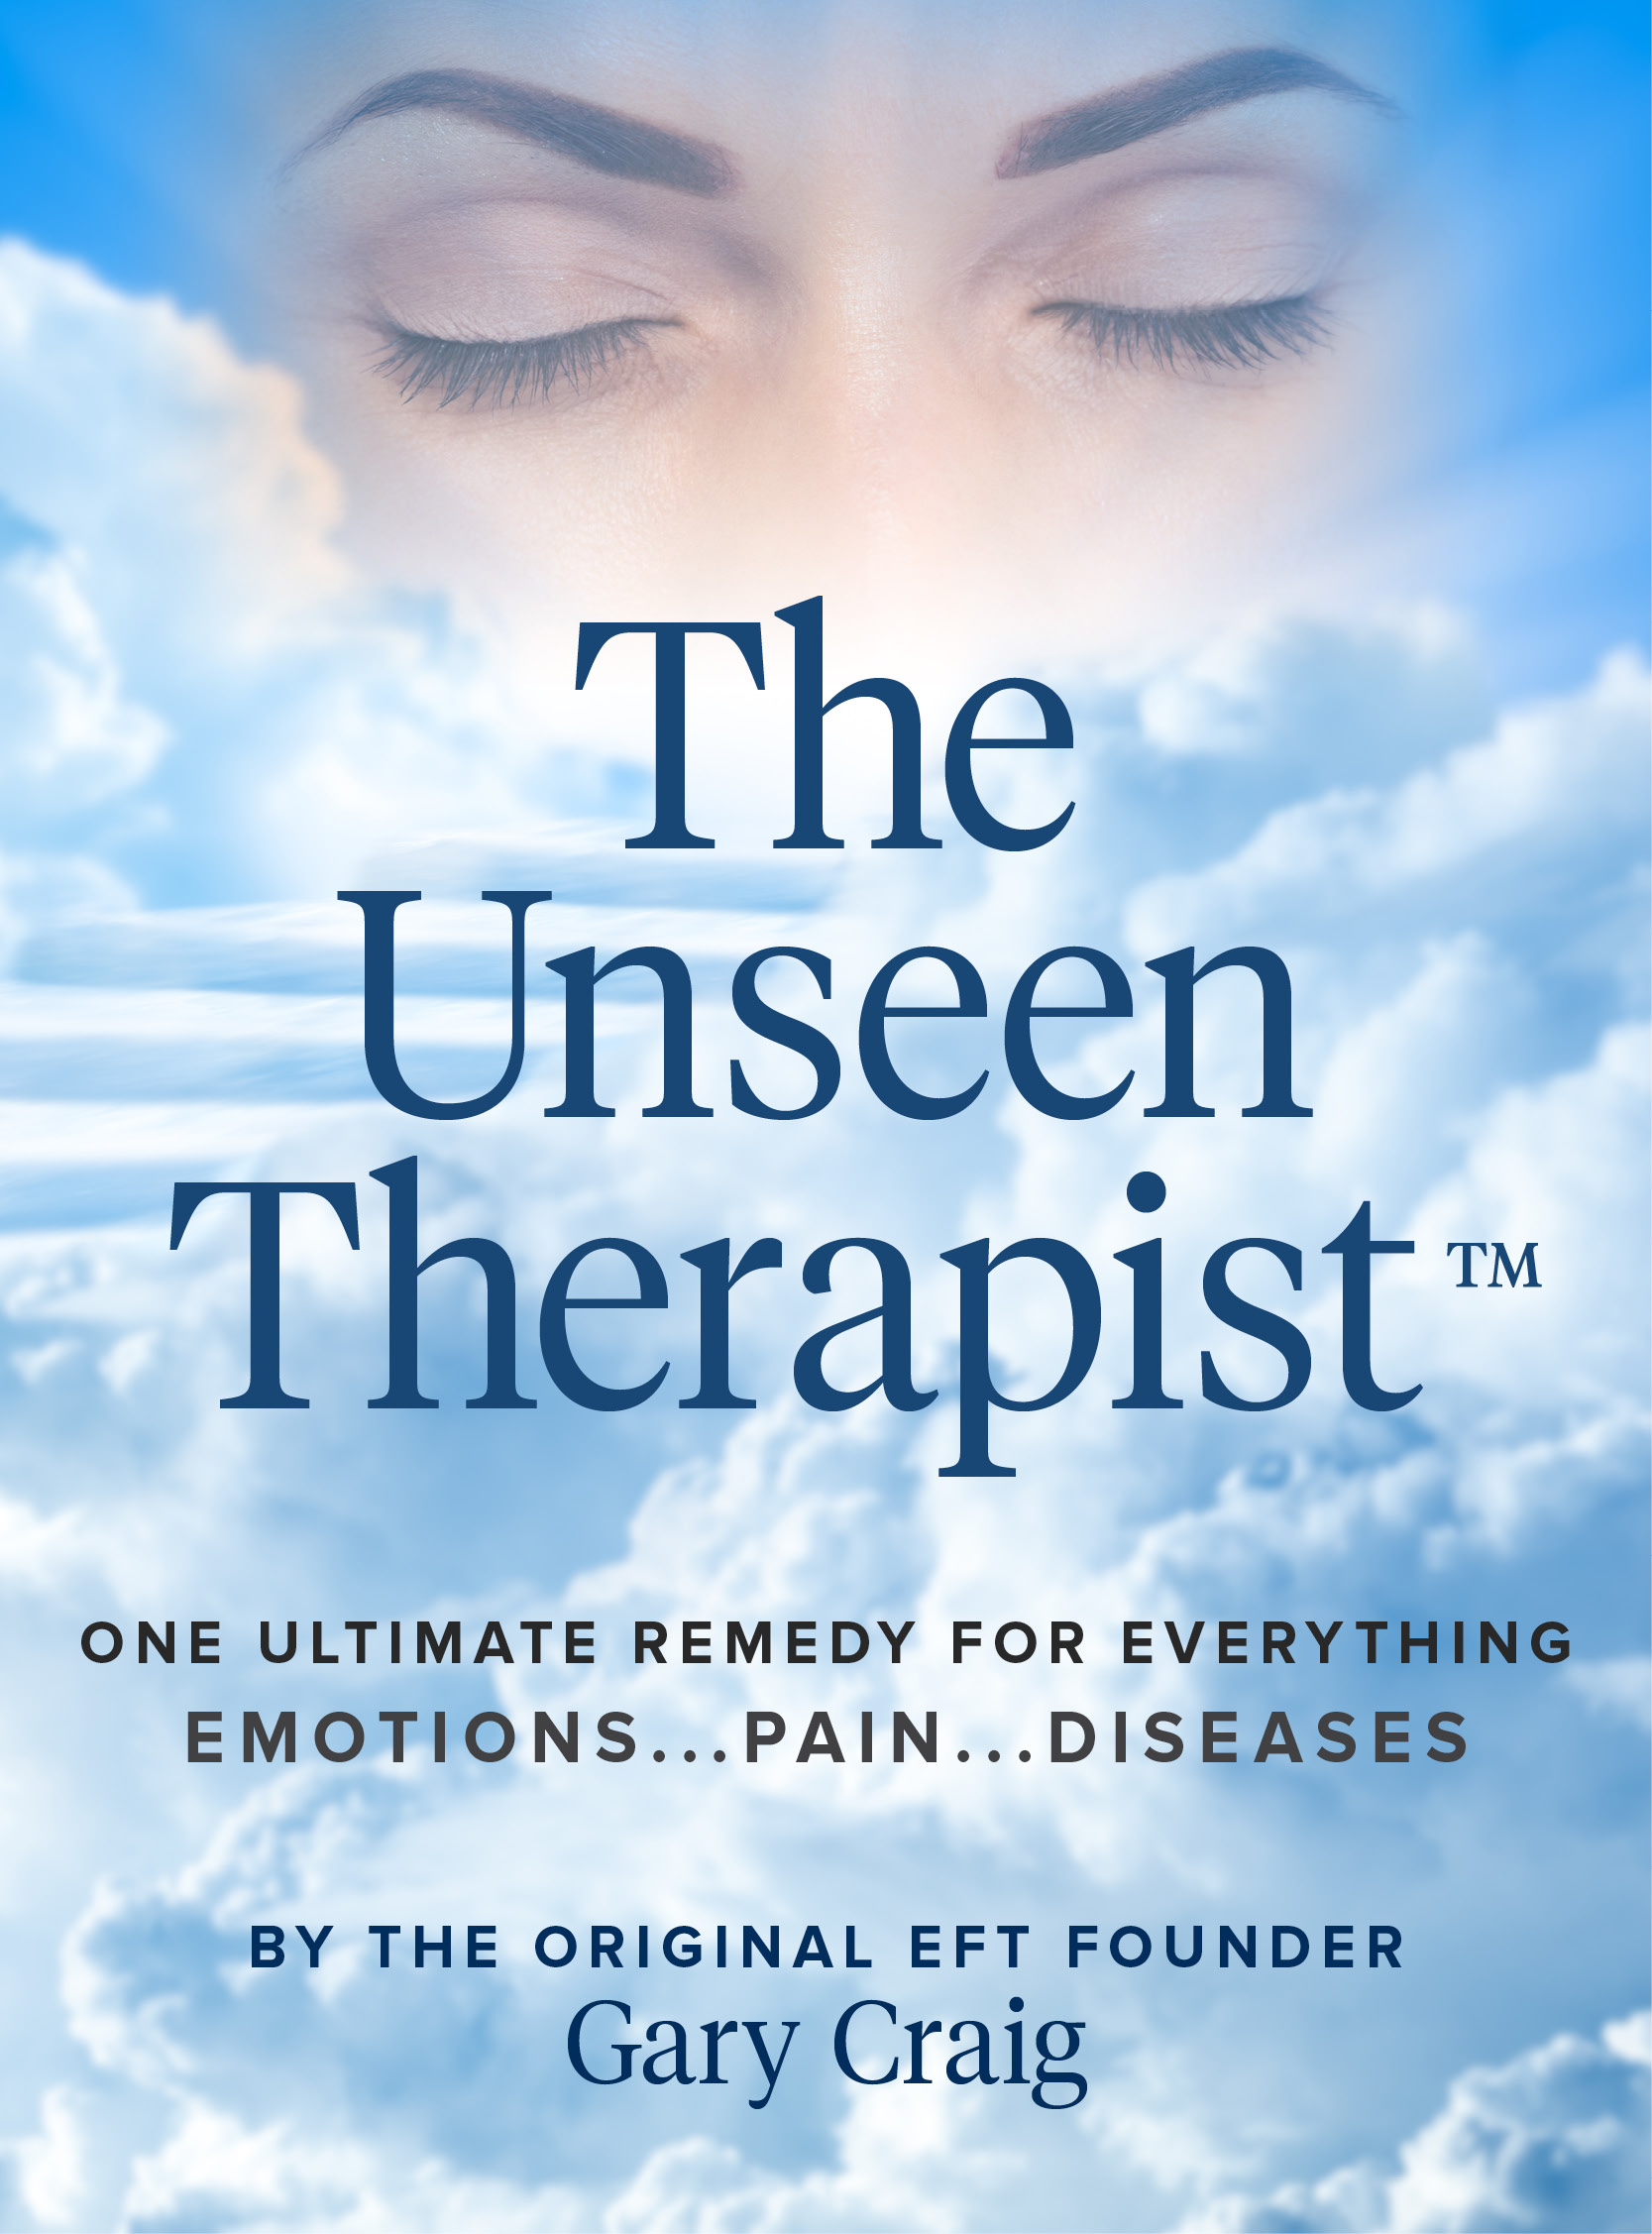 Unseen Therapist book title